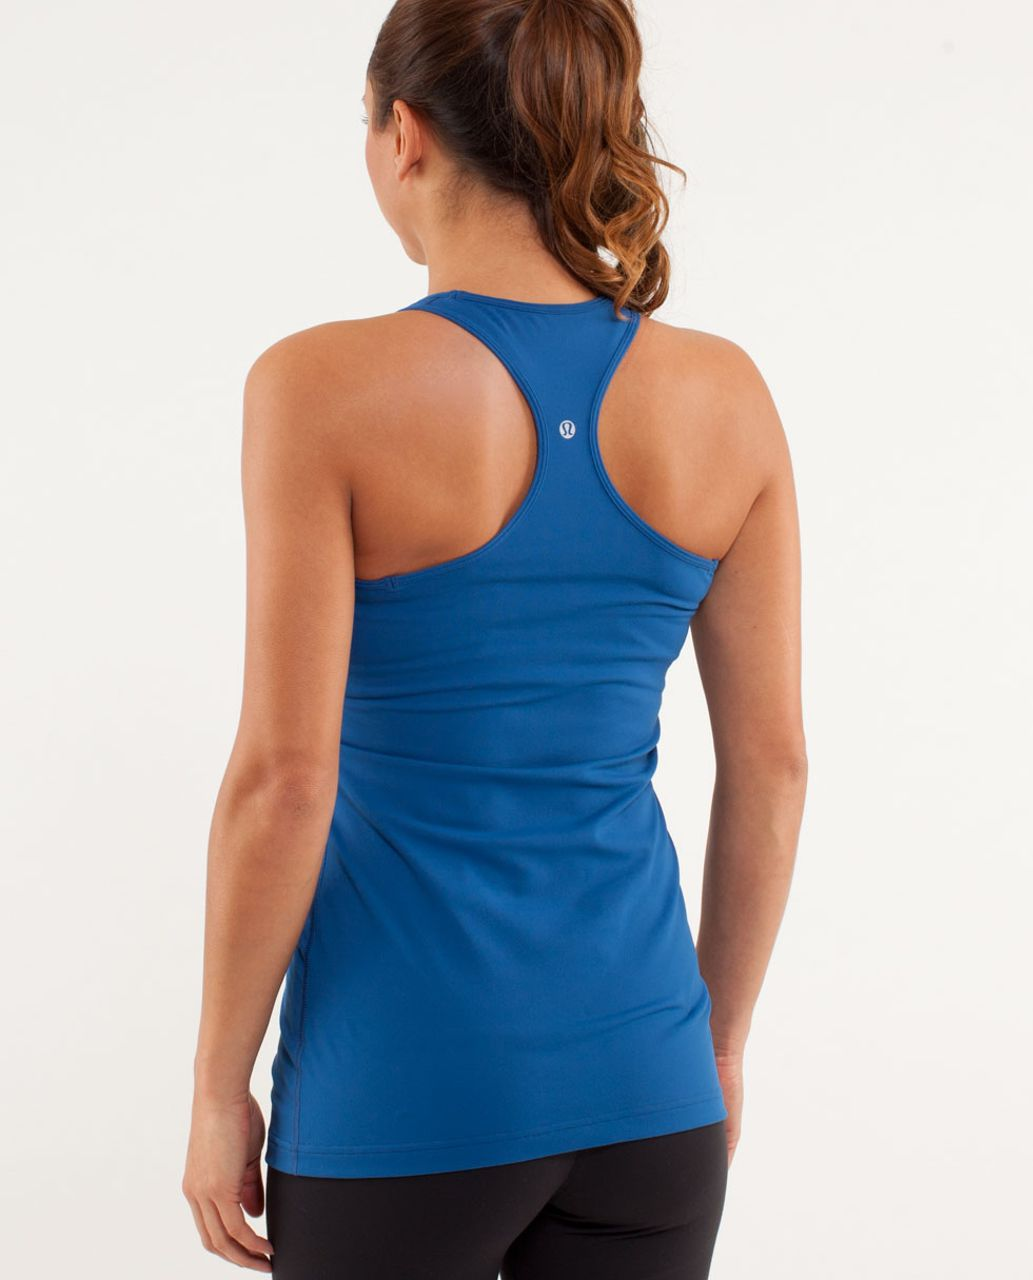 Lululemon Cool Racerback - Limitless Blue